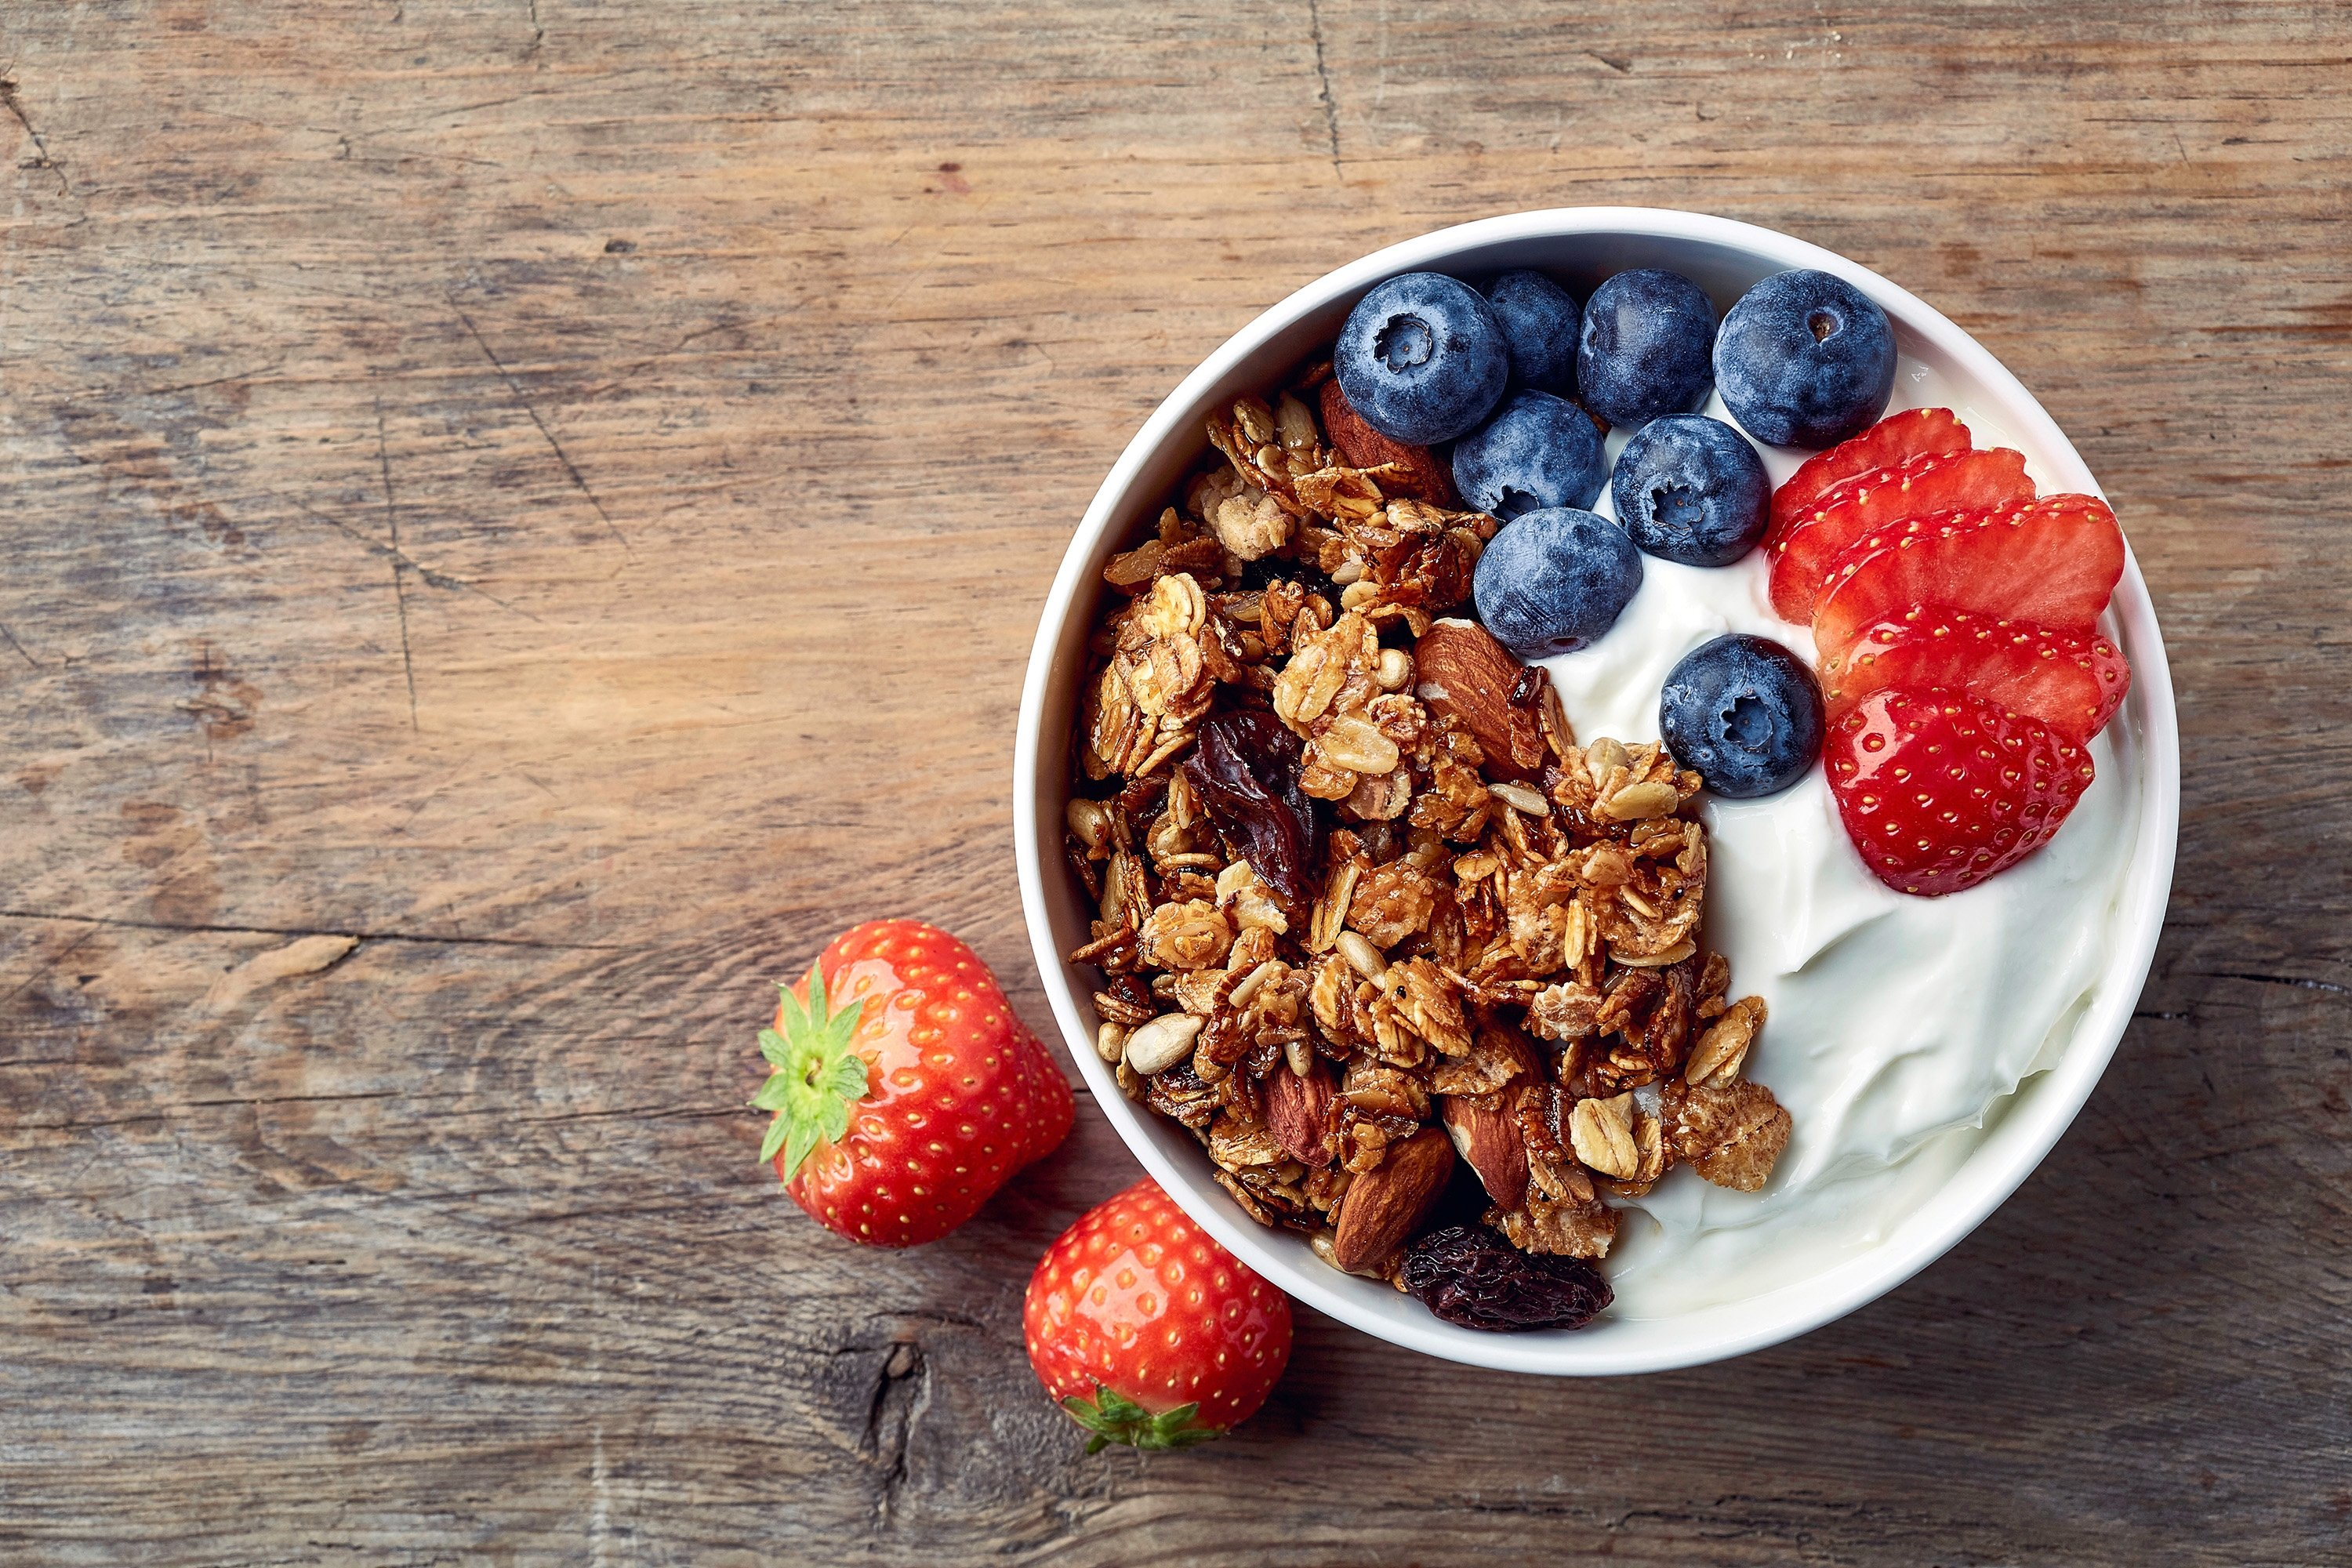 Add some yogurt to your morning granola for a probiotic punch. (Shutterstock Photo)